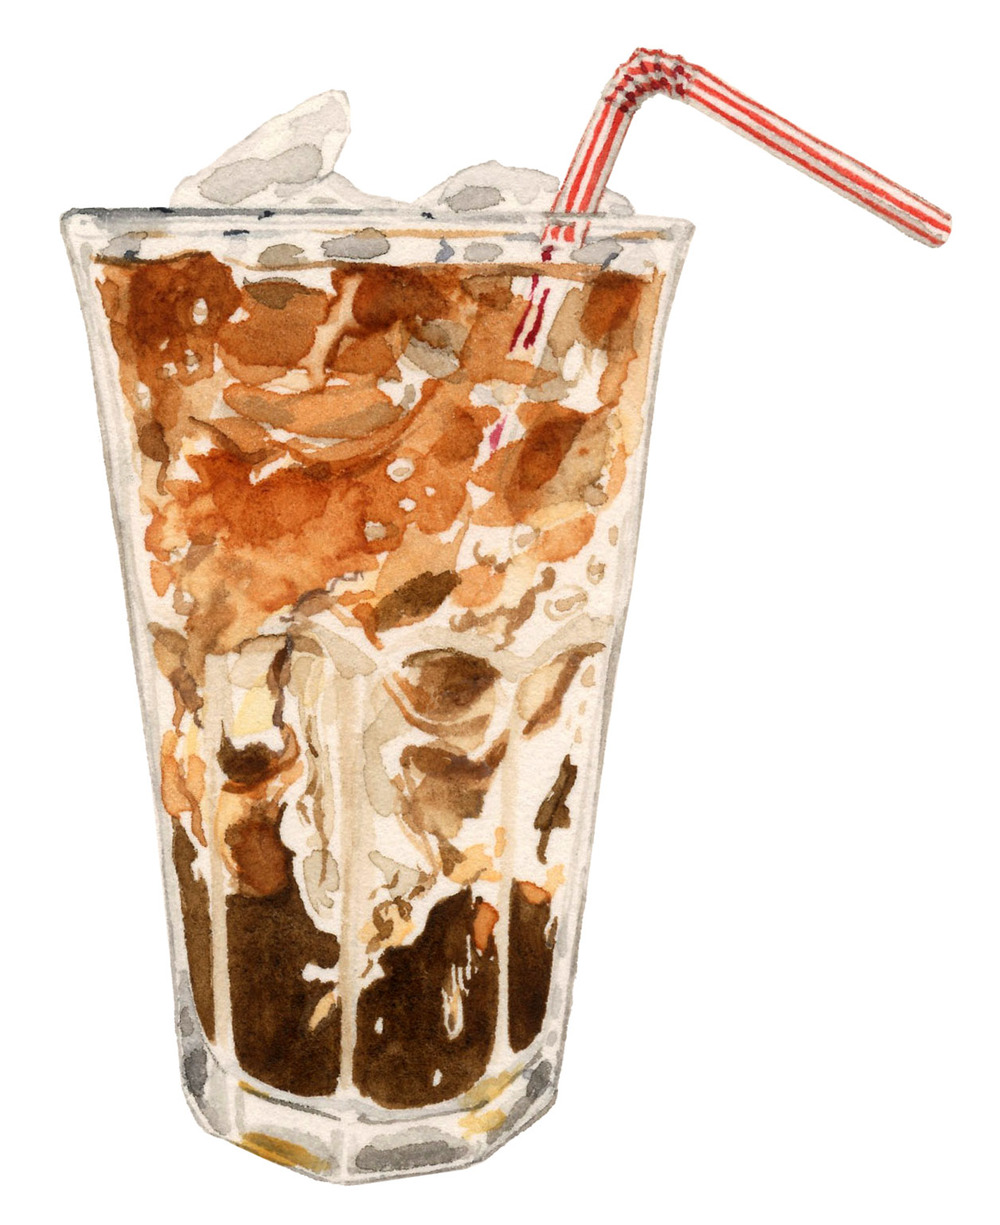 iced-coffee-lrg.jpg